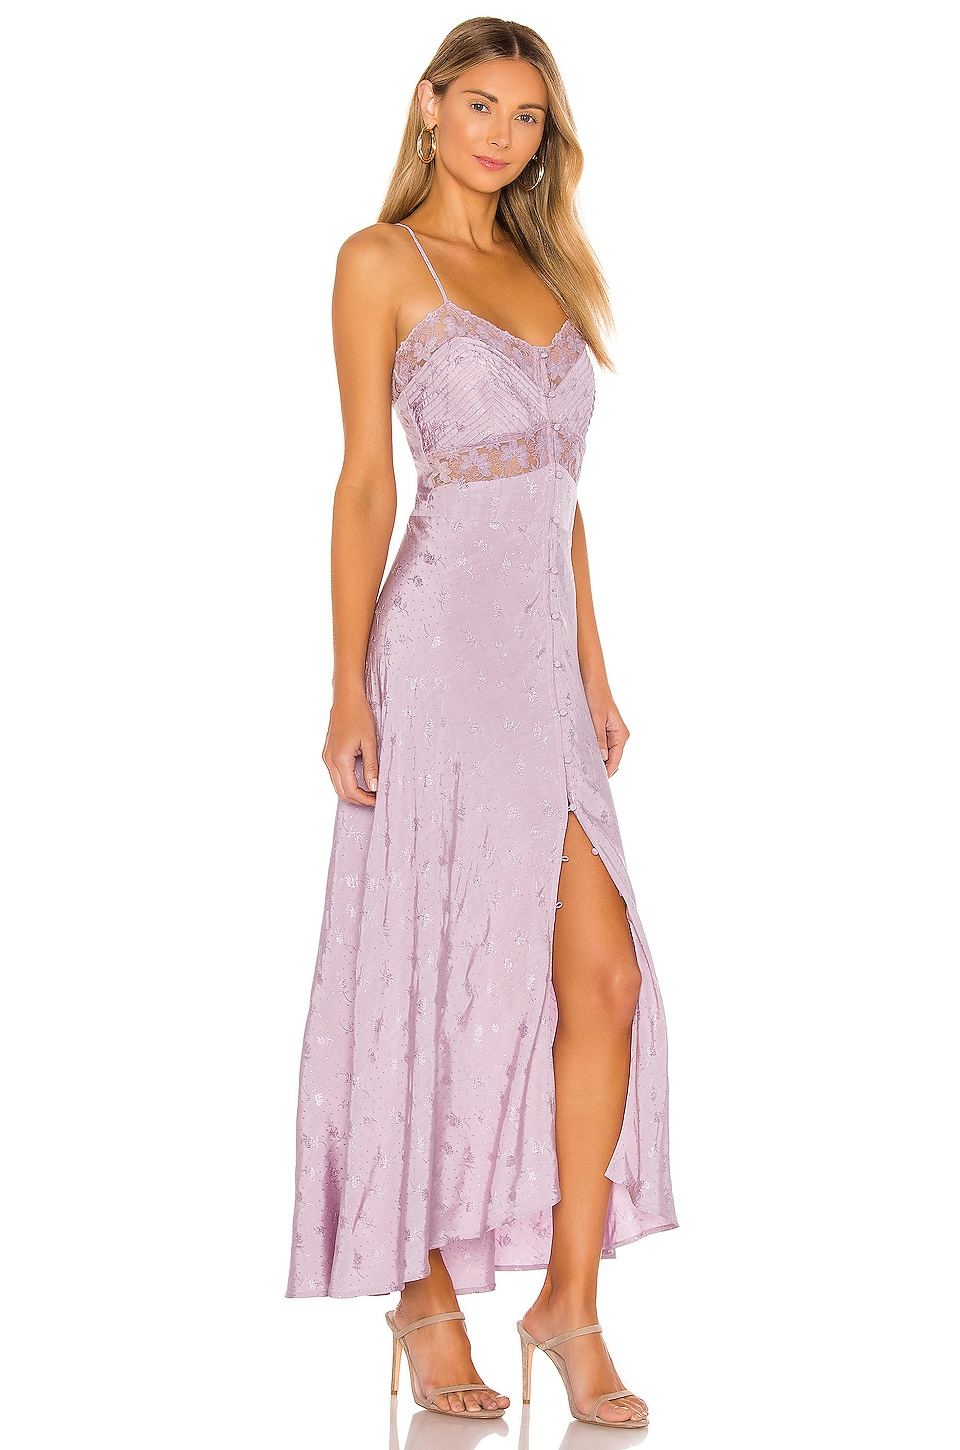 Dream Catcher Dress, view 2, click to view large image.